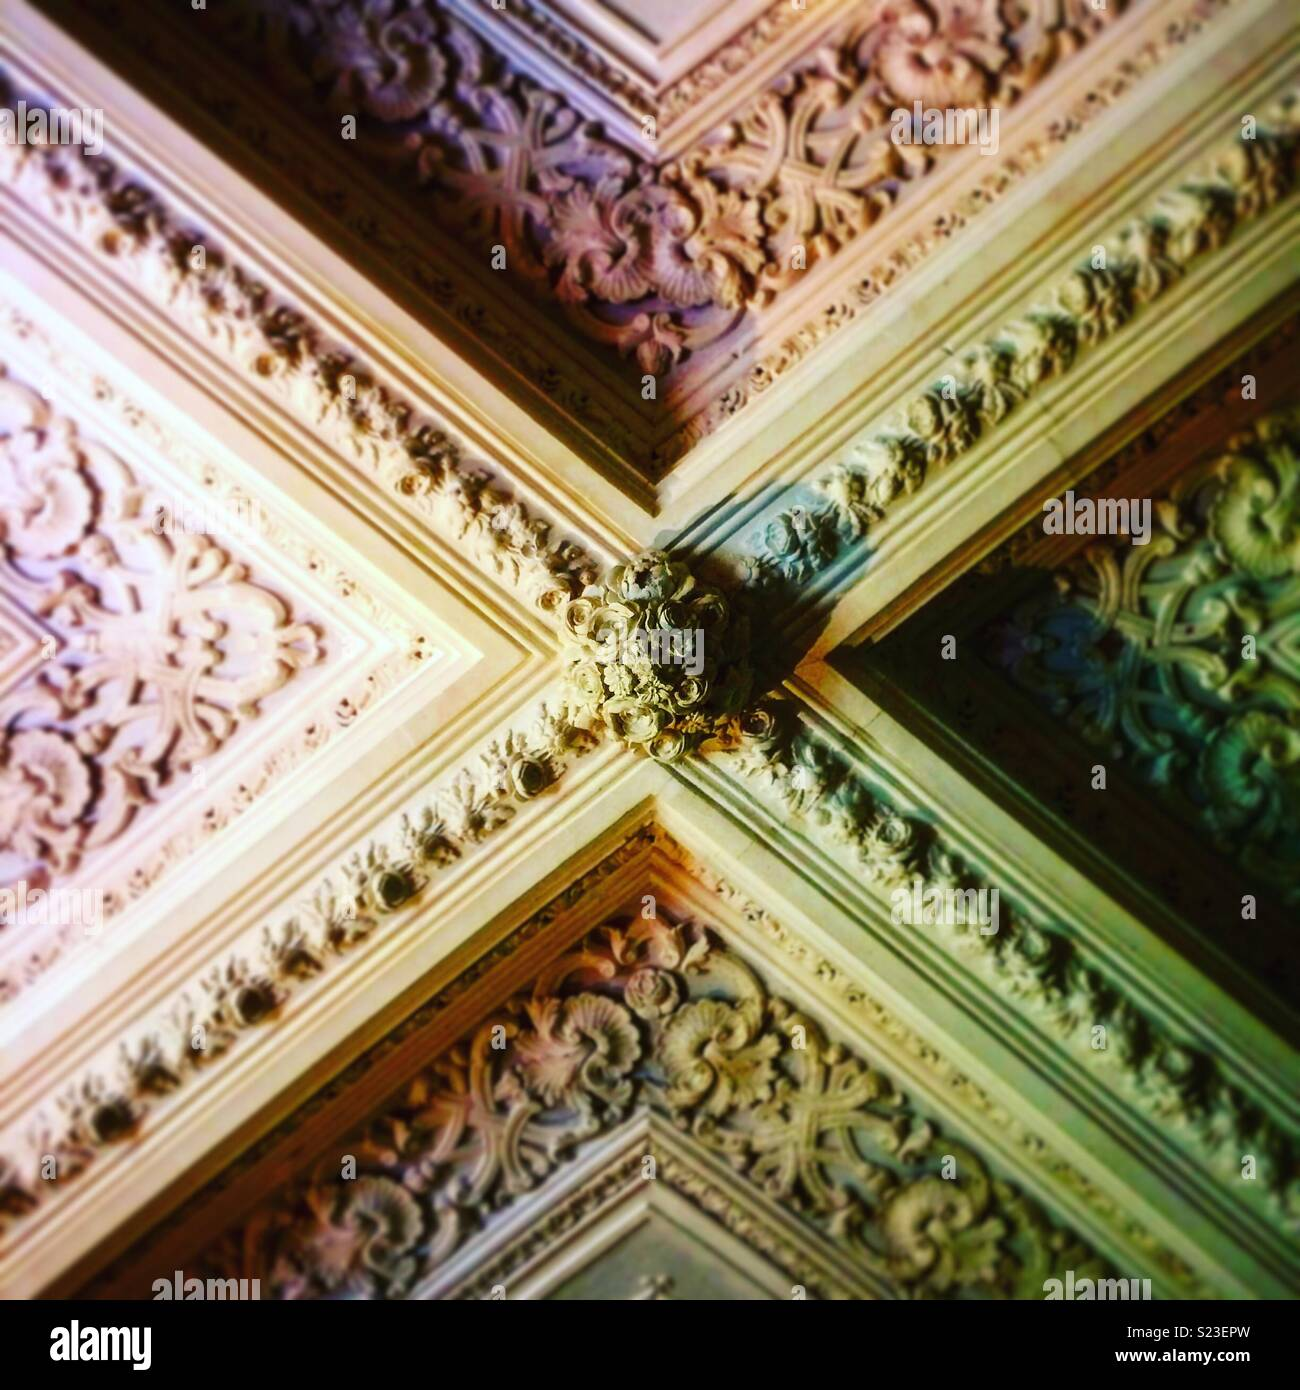 Ceiling and saturation - Stock Image